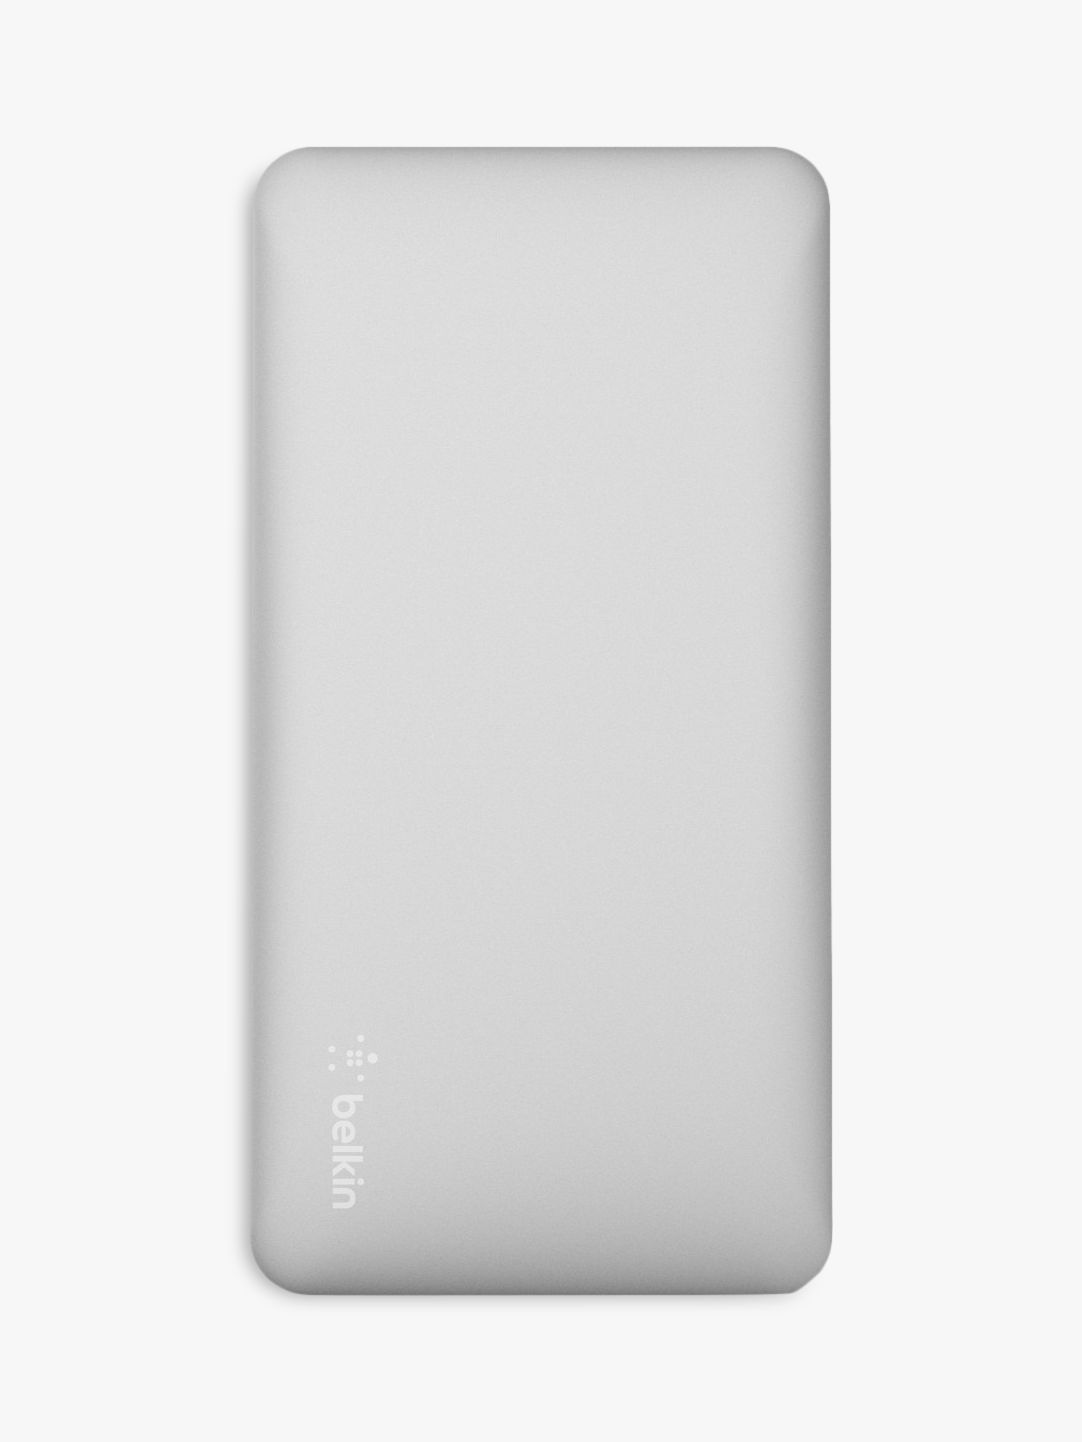 Belkin Belkin Pocket Power 10K Portable Power Bank Charger, Dual Port USB, Silver